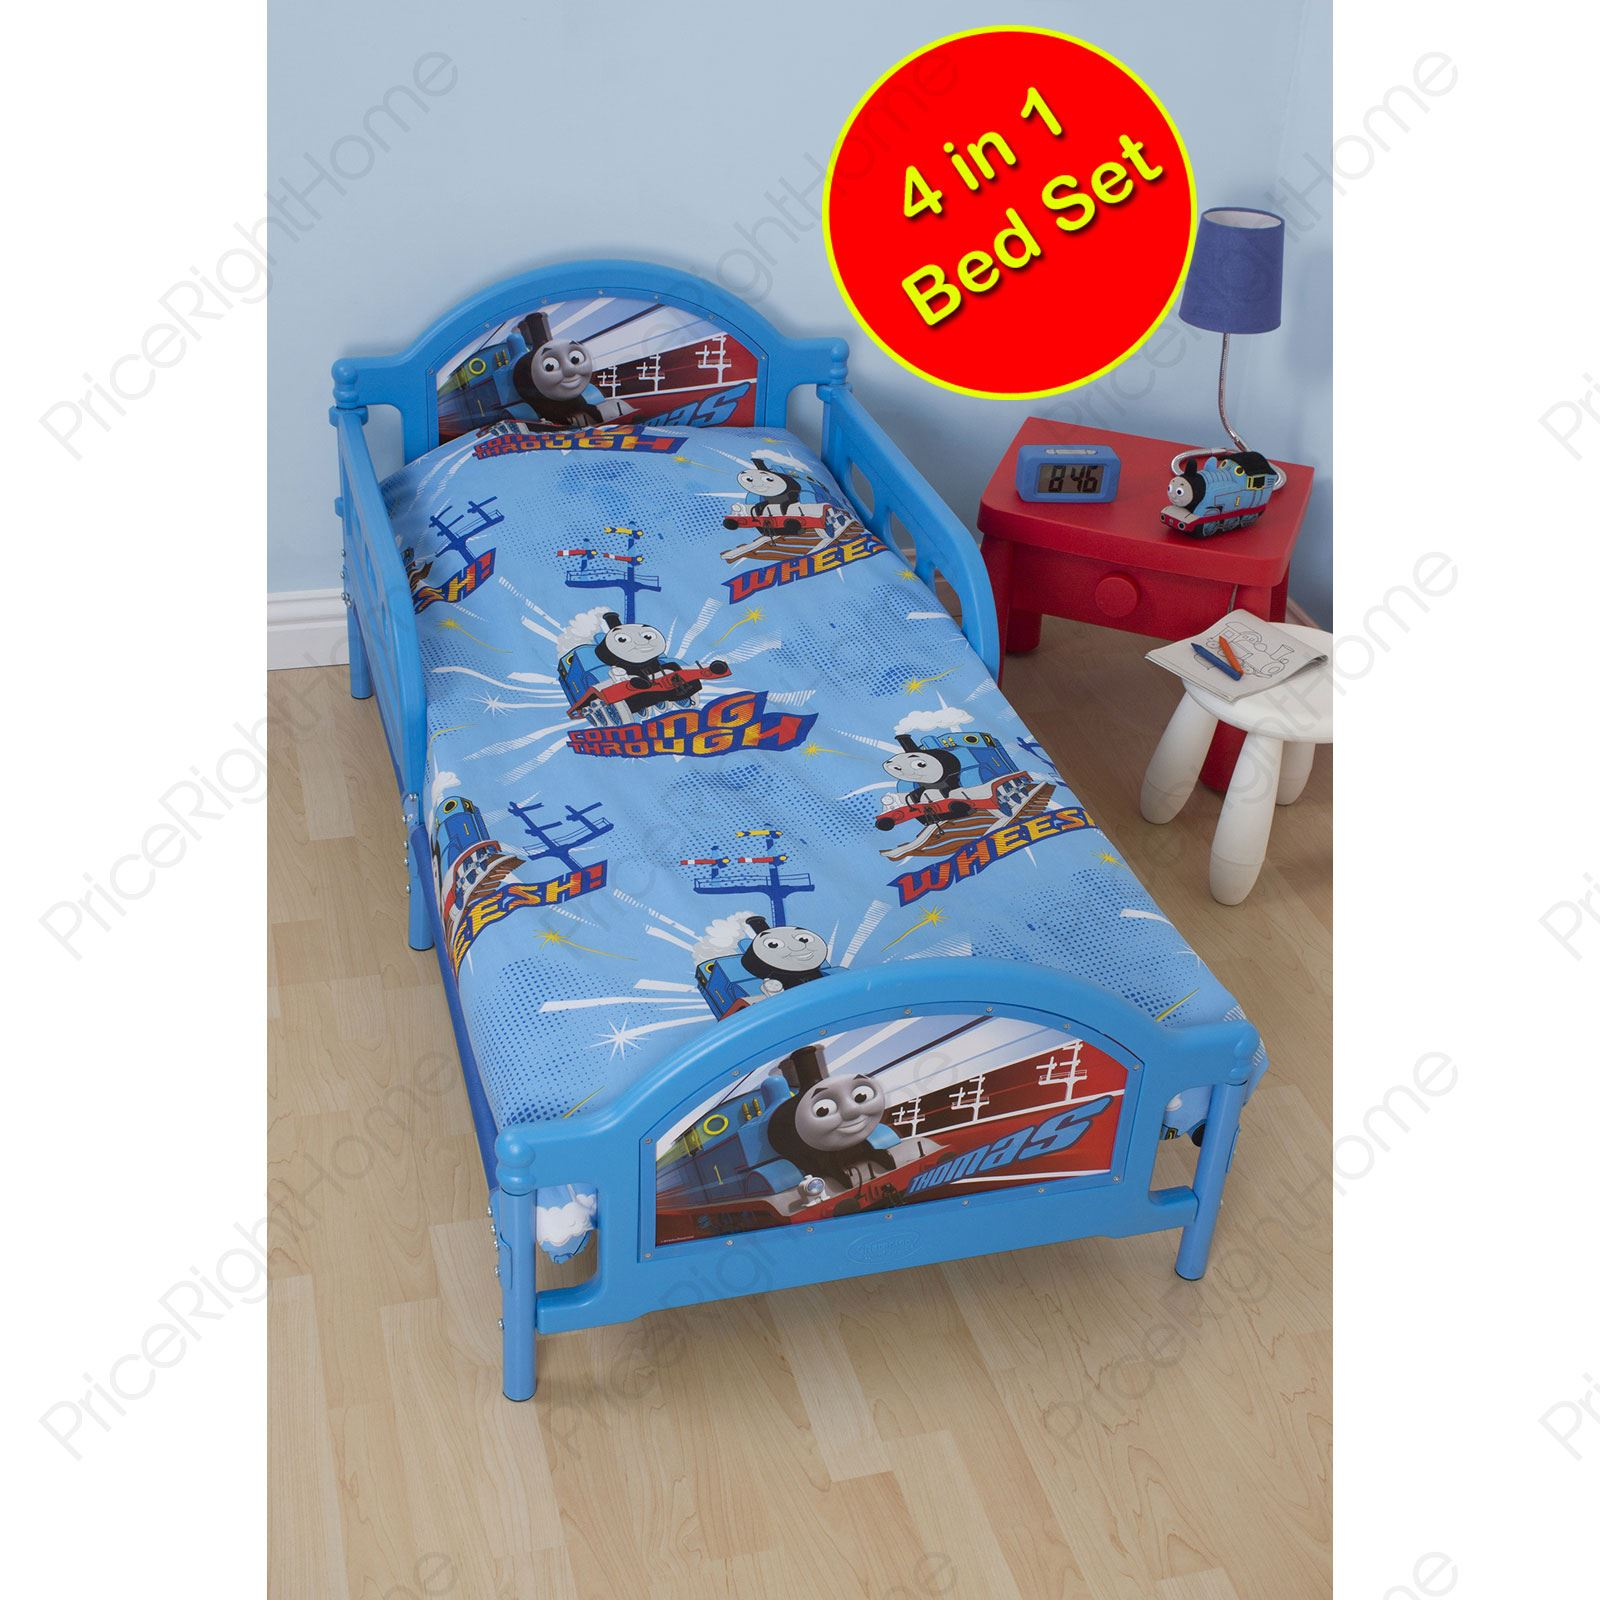 THOMAS THE TANK ENGINE BEDDING SINGLE DOUBLE AND. THOMAS THE TANK ENGINE BEDDING   SINGLE  DOUBLE AND TODDLER SIZE